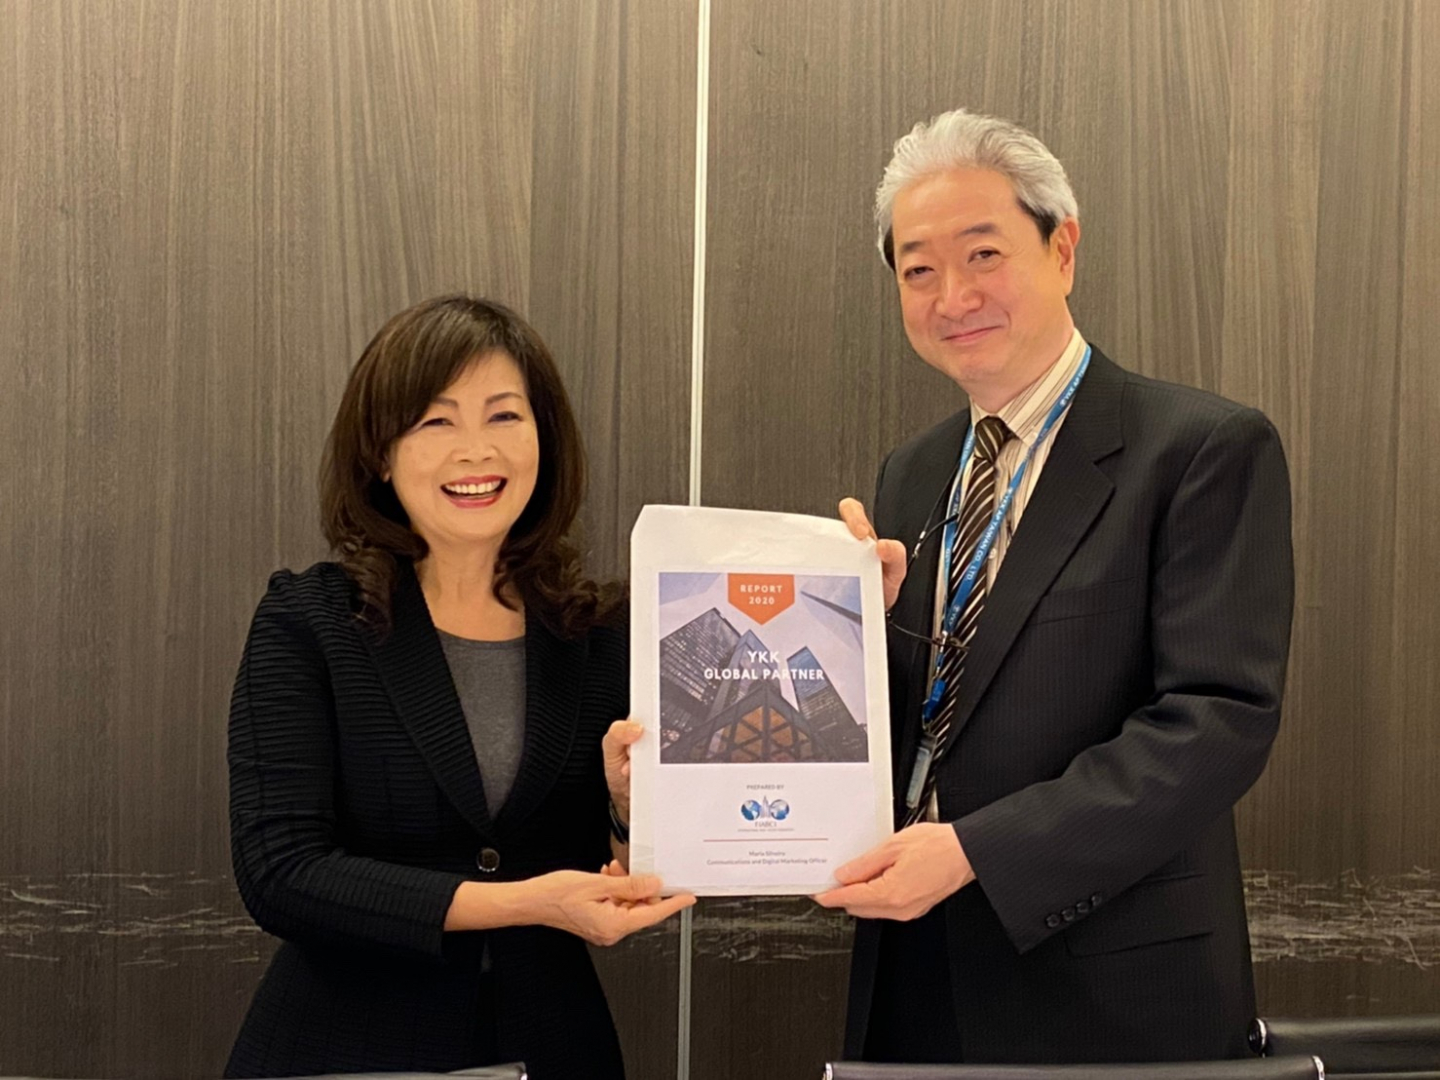 FIABCI renews successful partnerships with YKK and Daikin